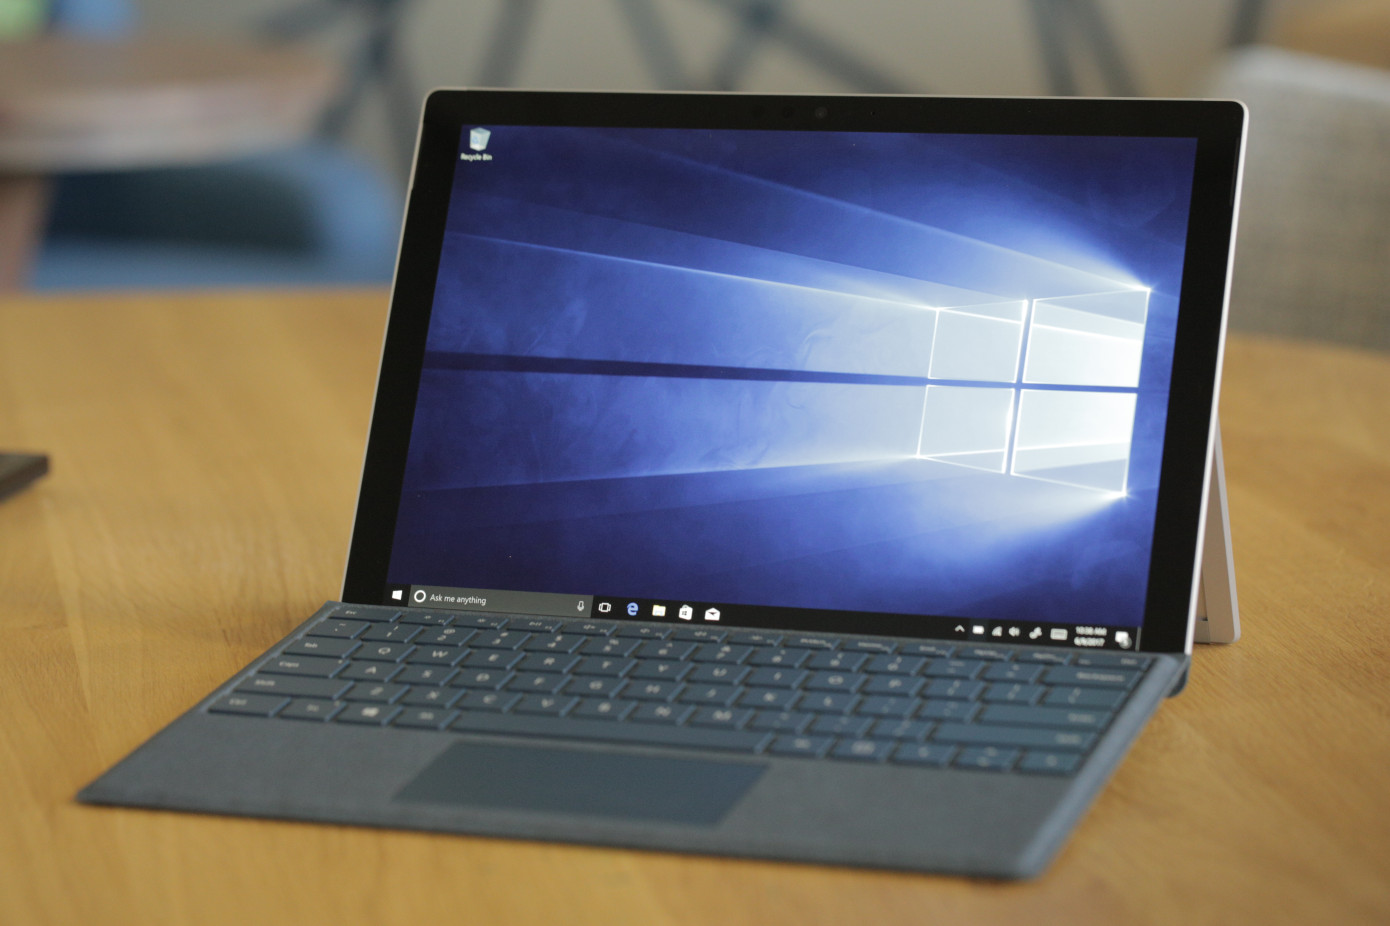 Microsoft To Release Low-Cost Tablets To Rival iPad